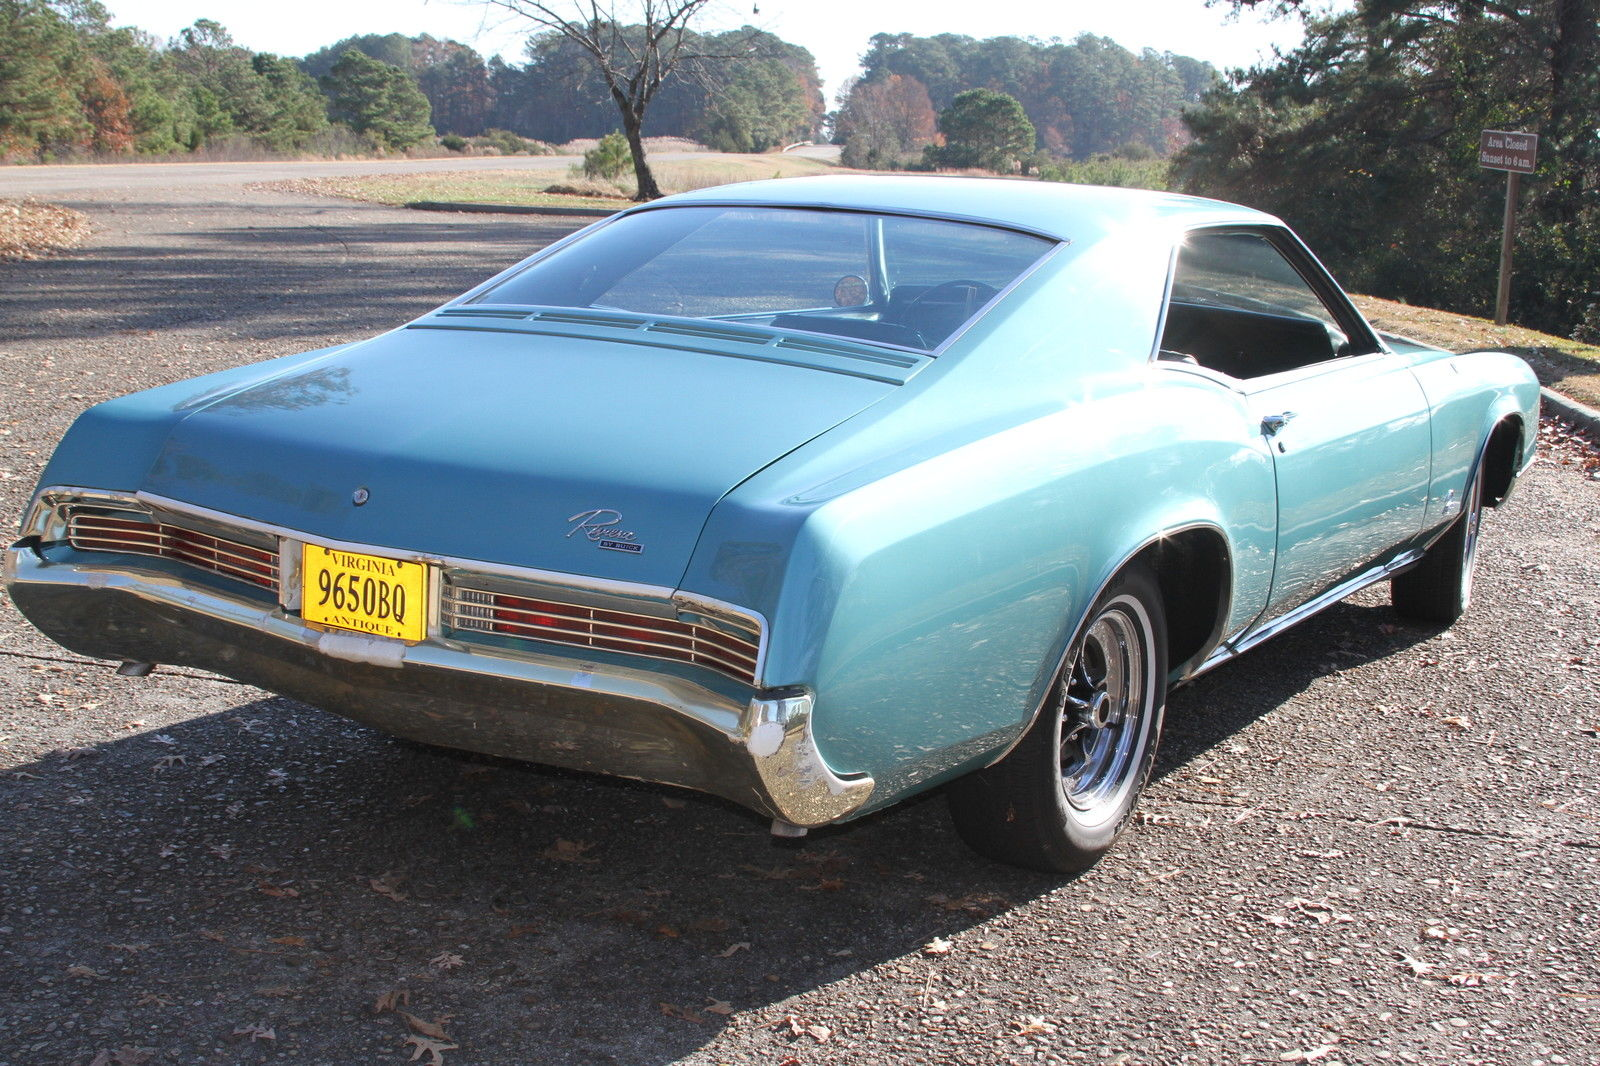 1966 buick riviera, low reserve, great driving classic